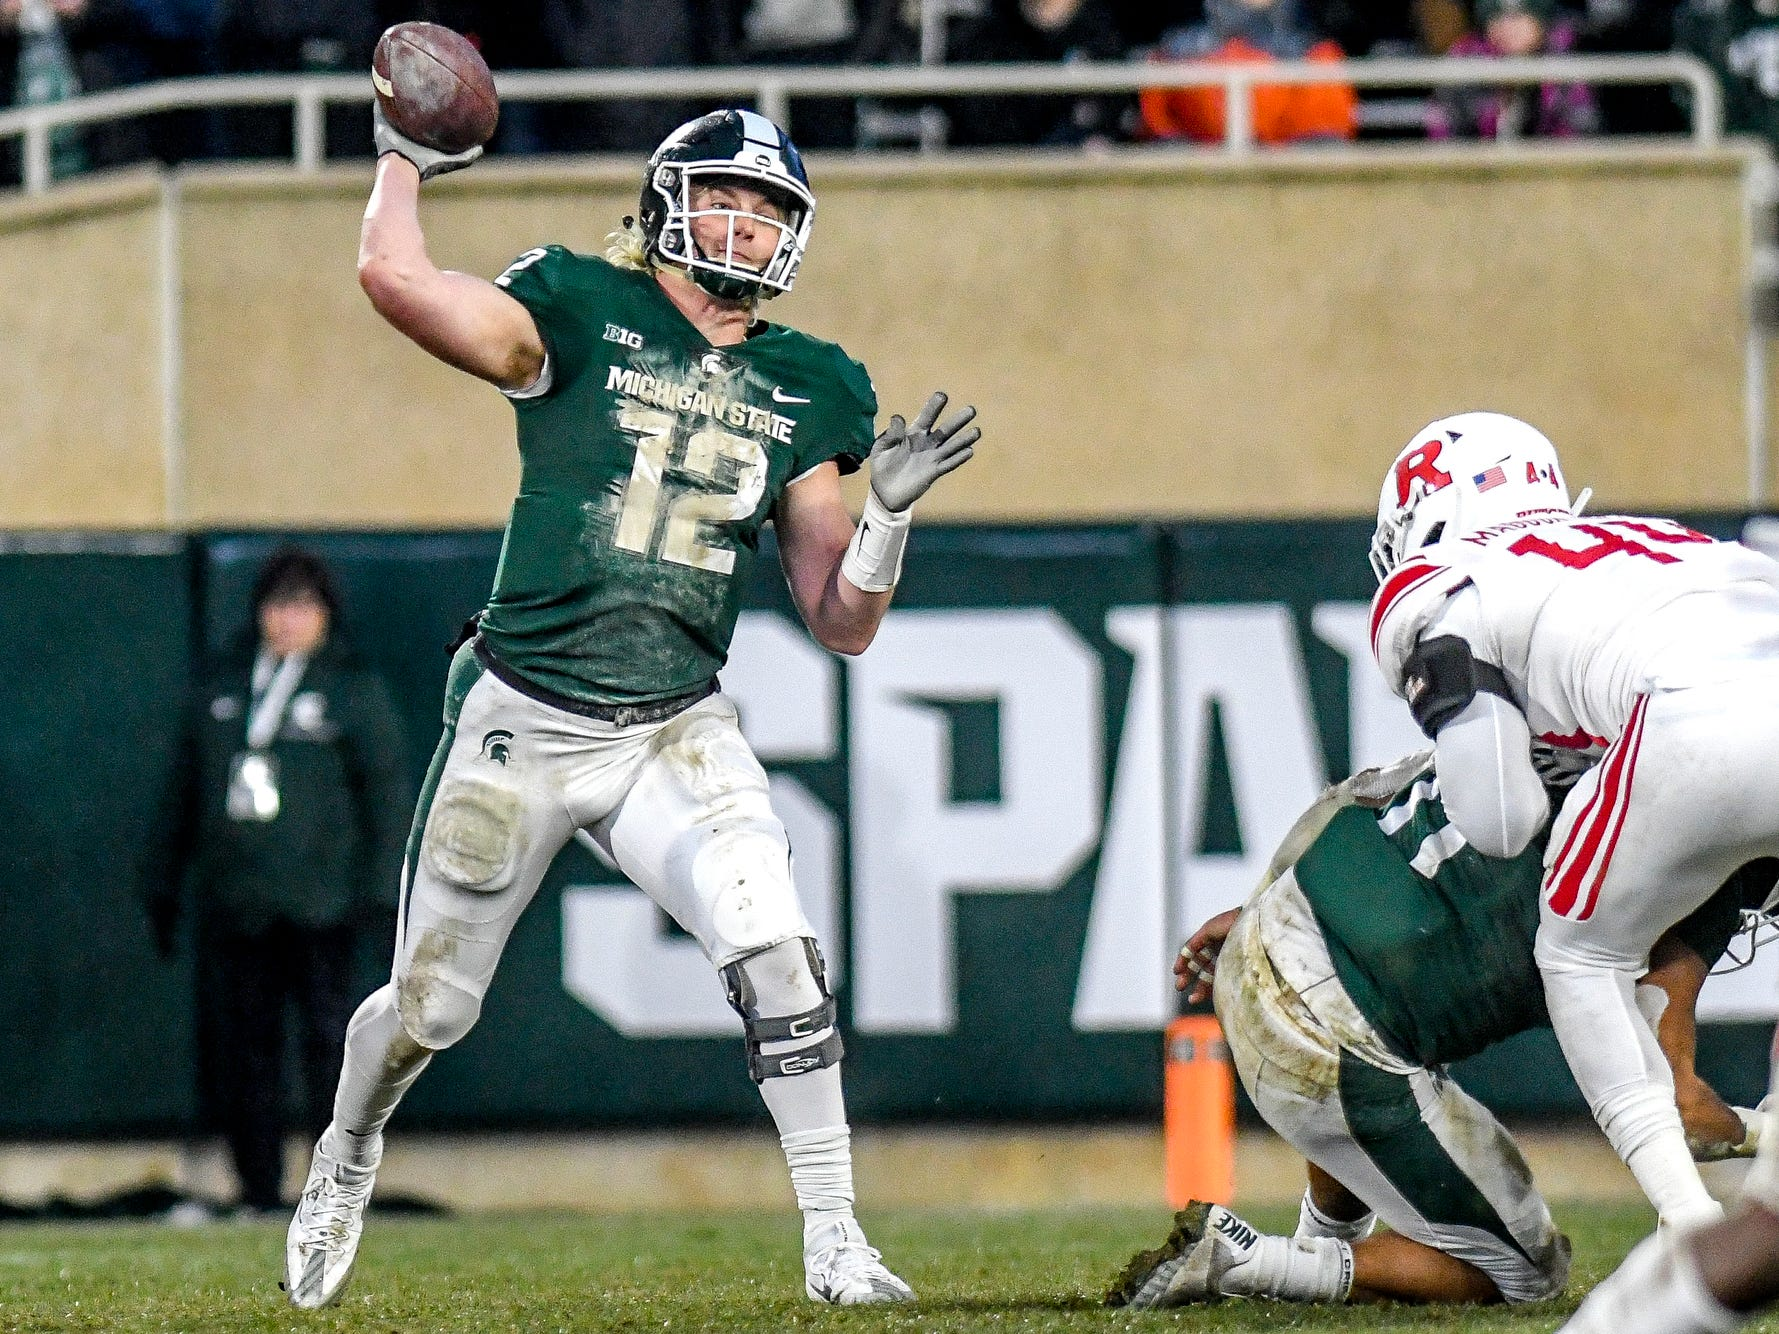 Michigan State's Rocky Lombardi throws a pass during the second quarter on Saturday, Nov. 24, 2018, at Spartan Stadium in East Lansing.